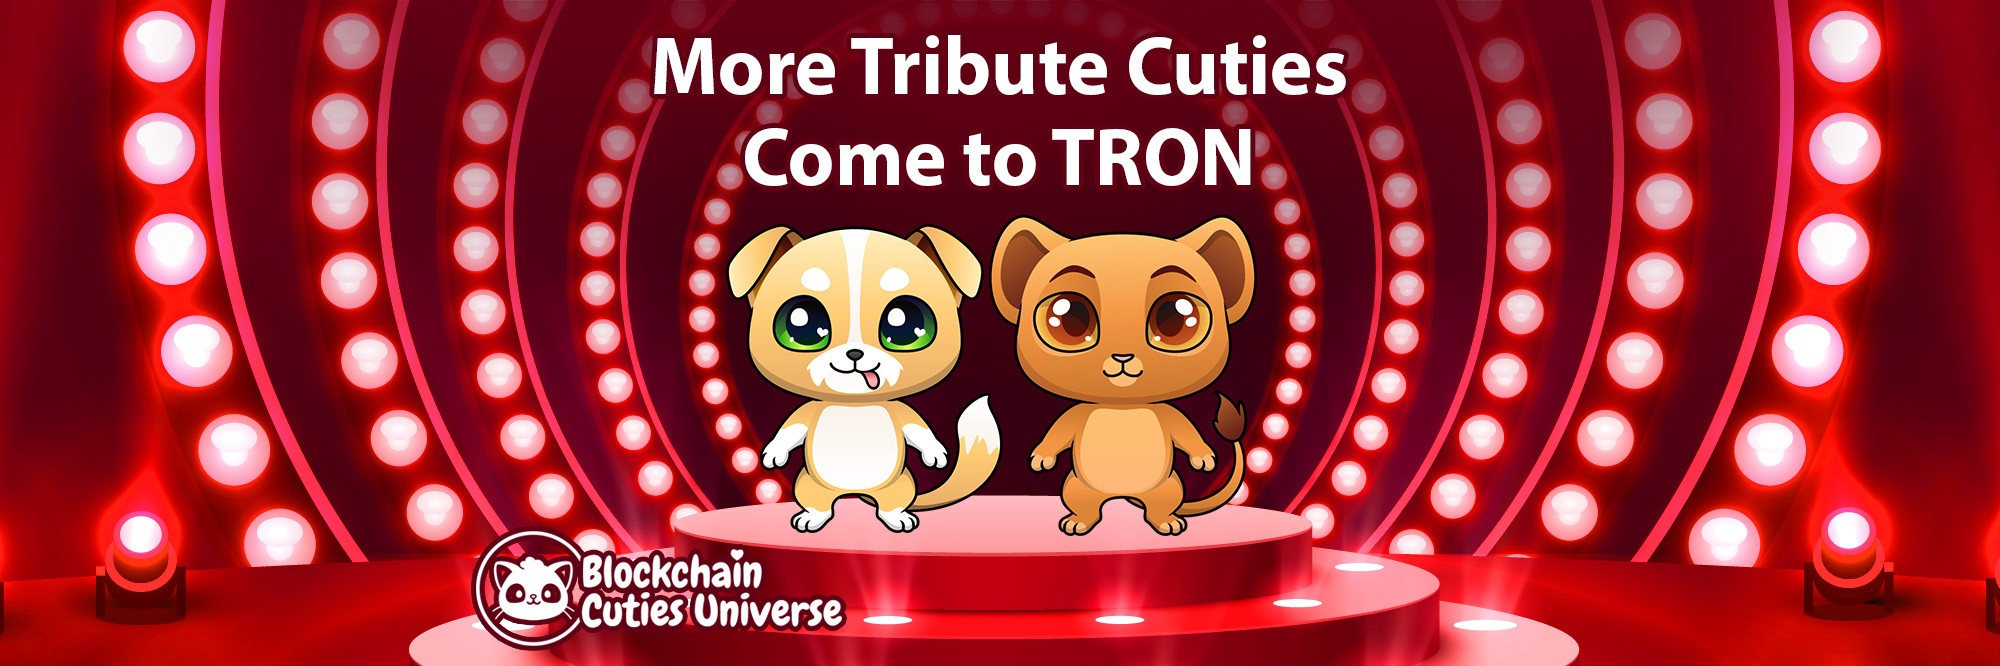 Two More Tribute Cuties Joined TRON